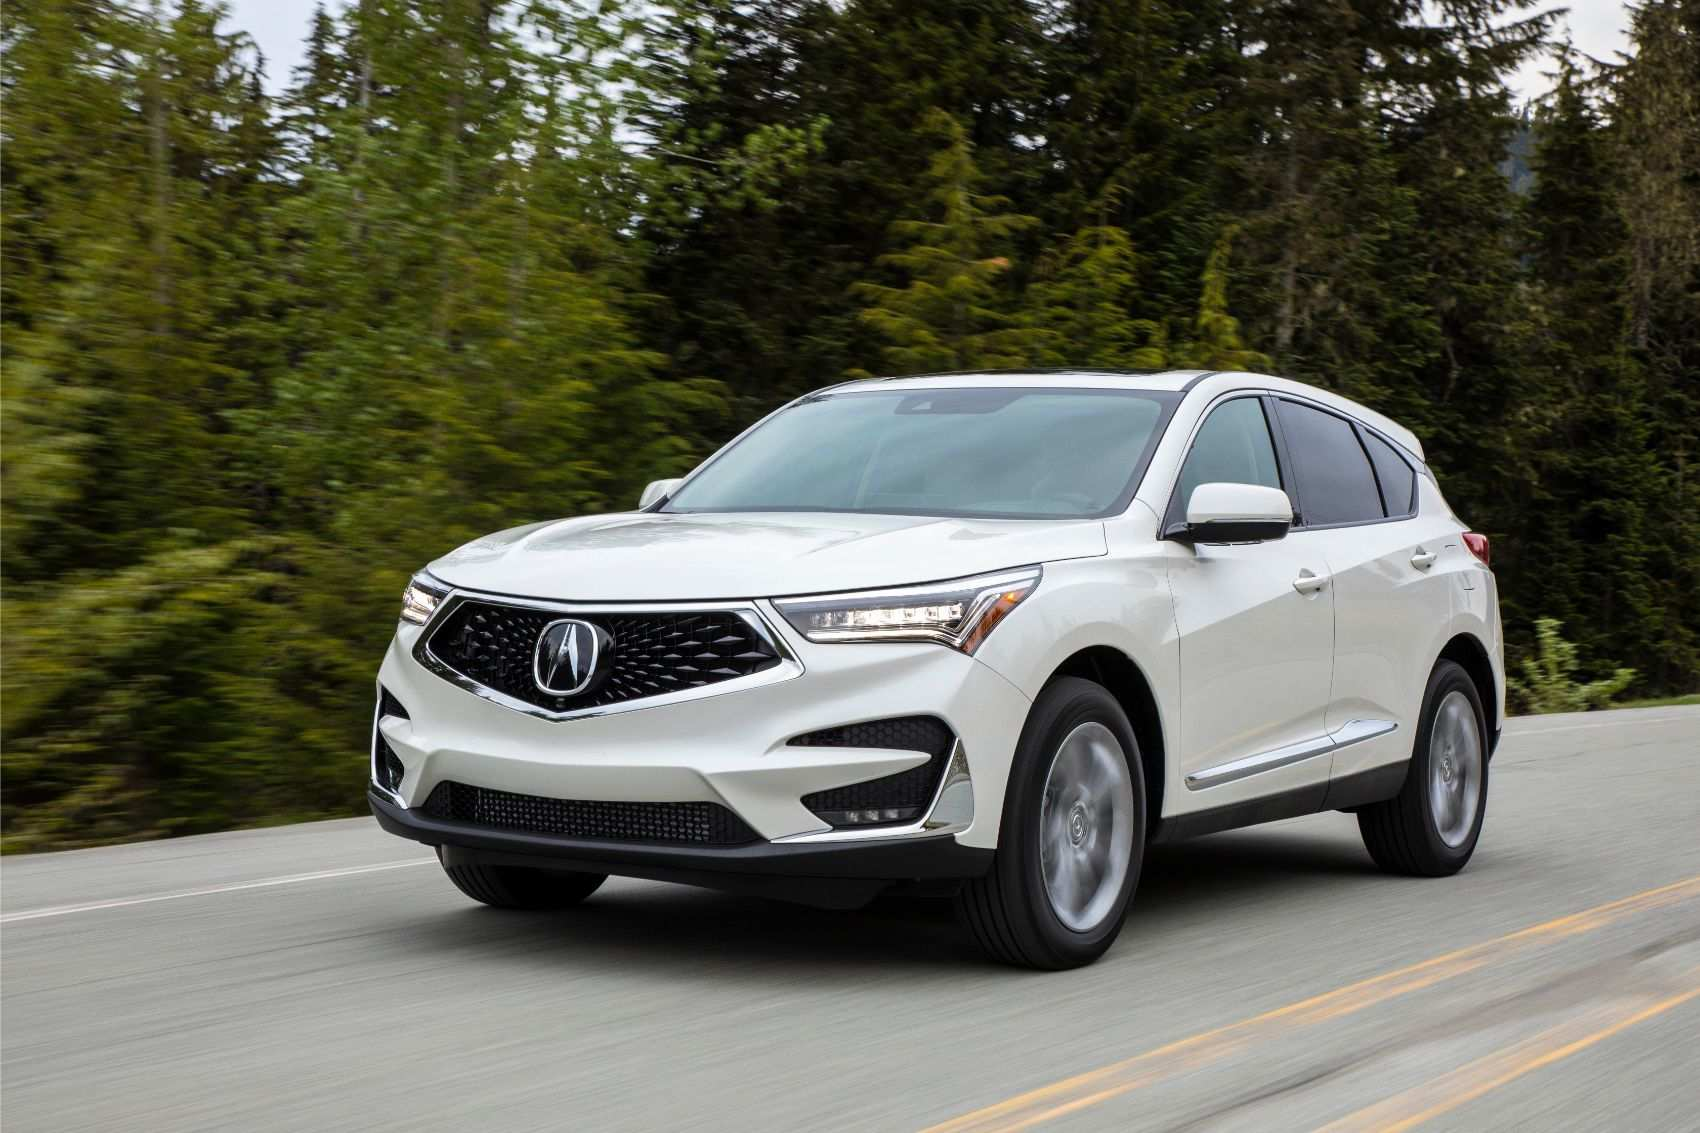 92 Great 2020 Acura Mdx Changes Speed Test with 2020 Acura Mdx Changes